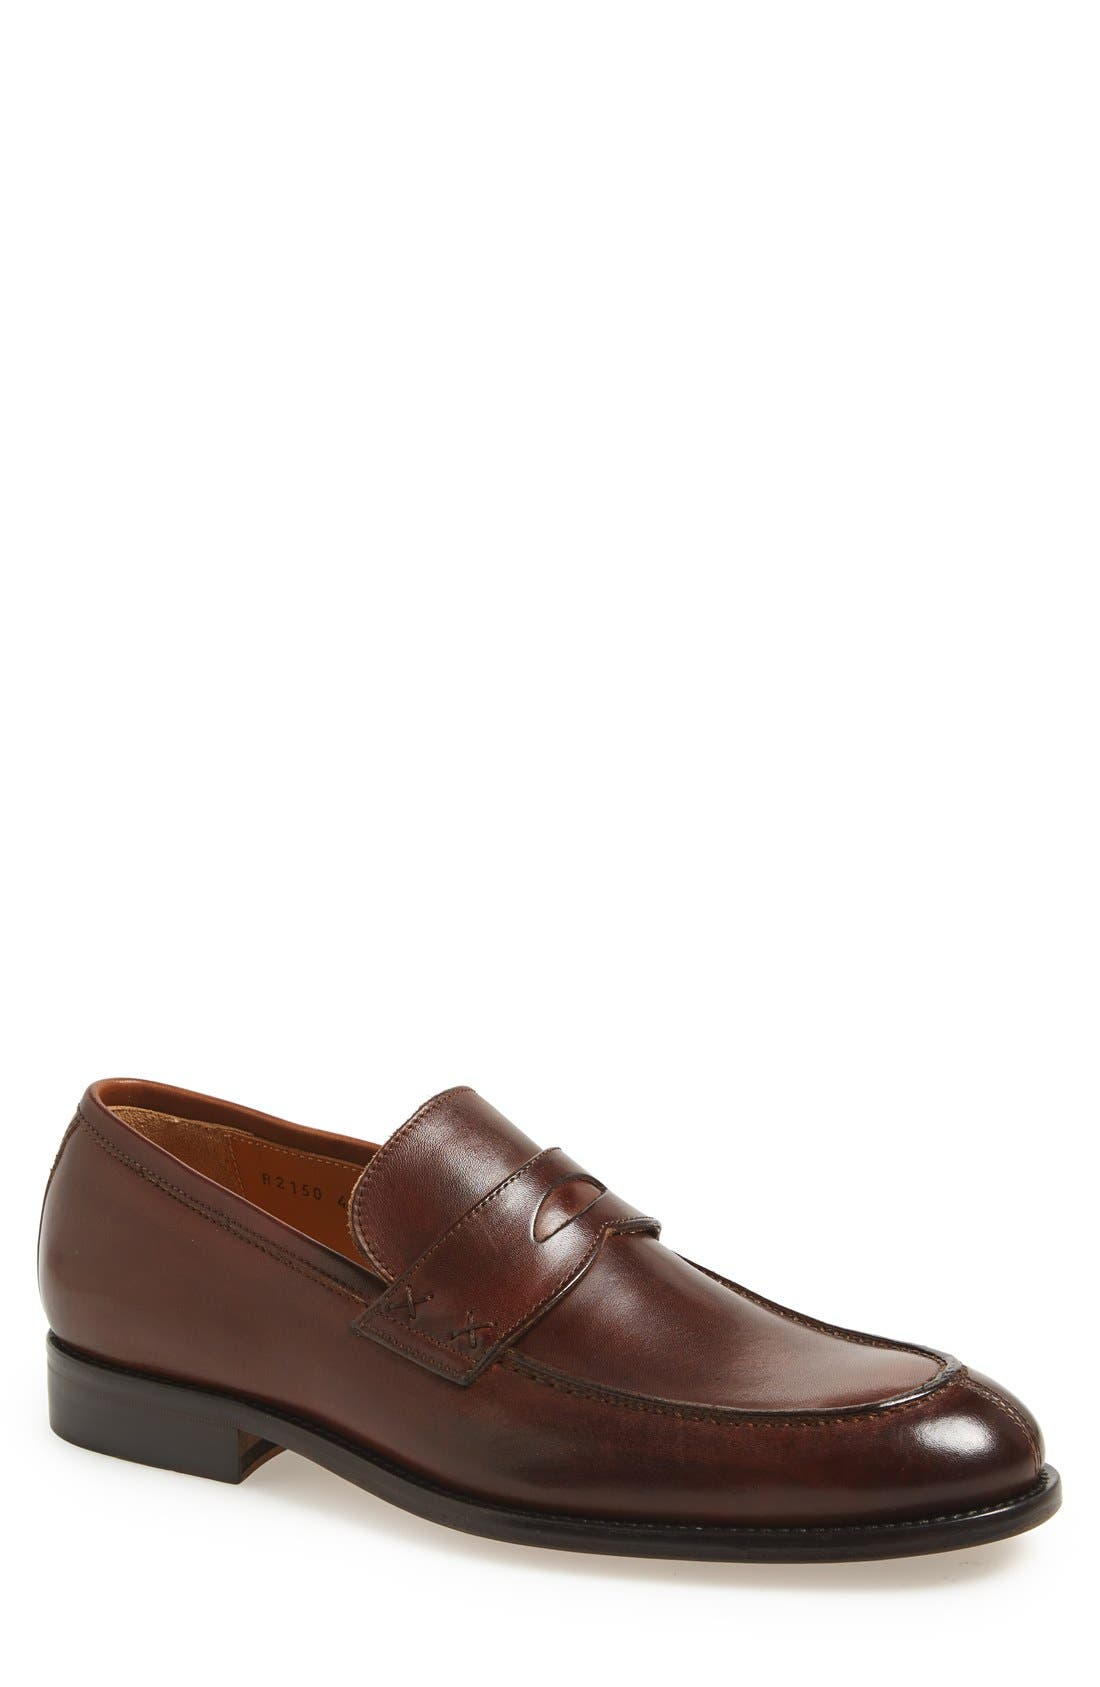 Alternate Image 1 Selected - Dogen 'Vitello Crust' Penny Loafer (Men)